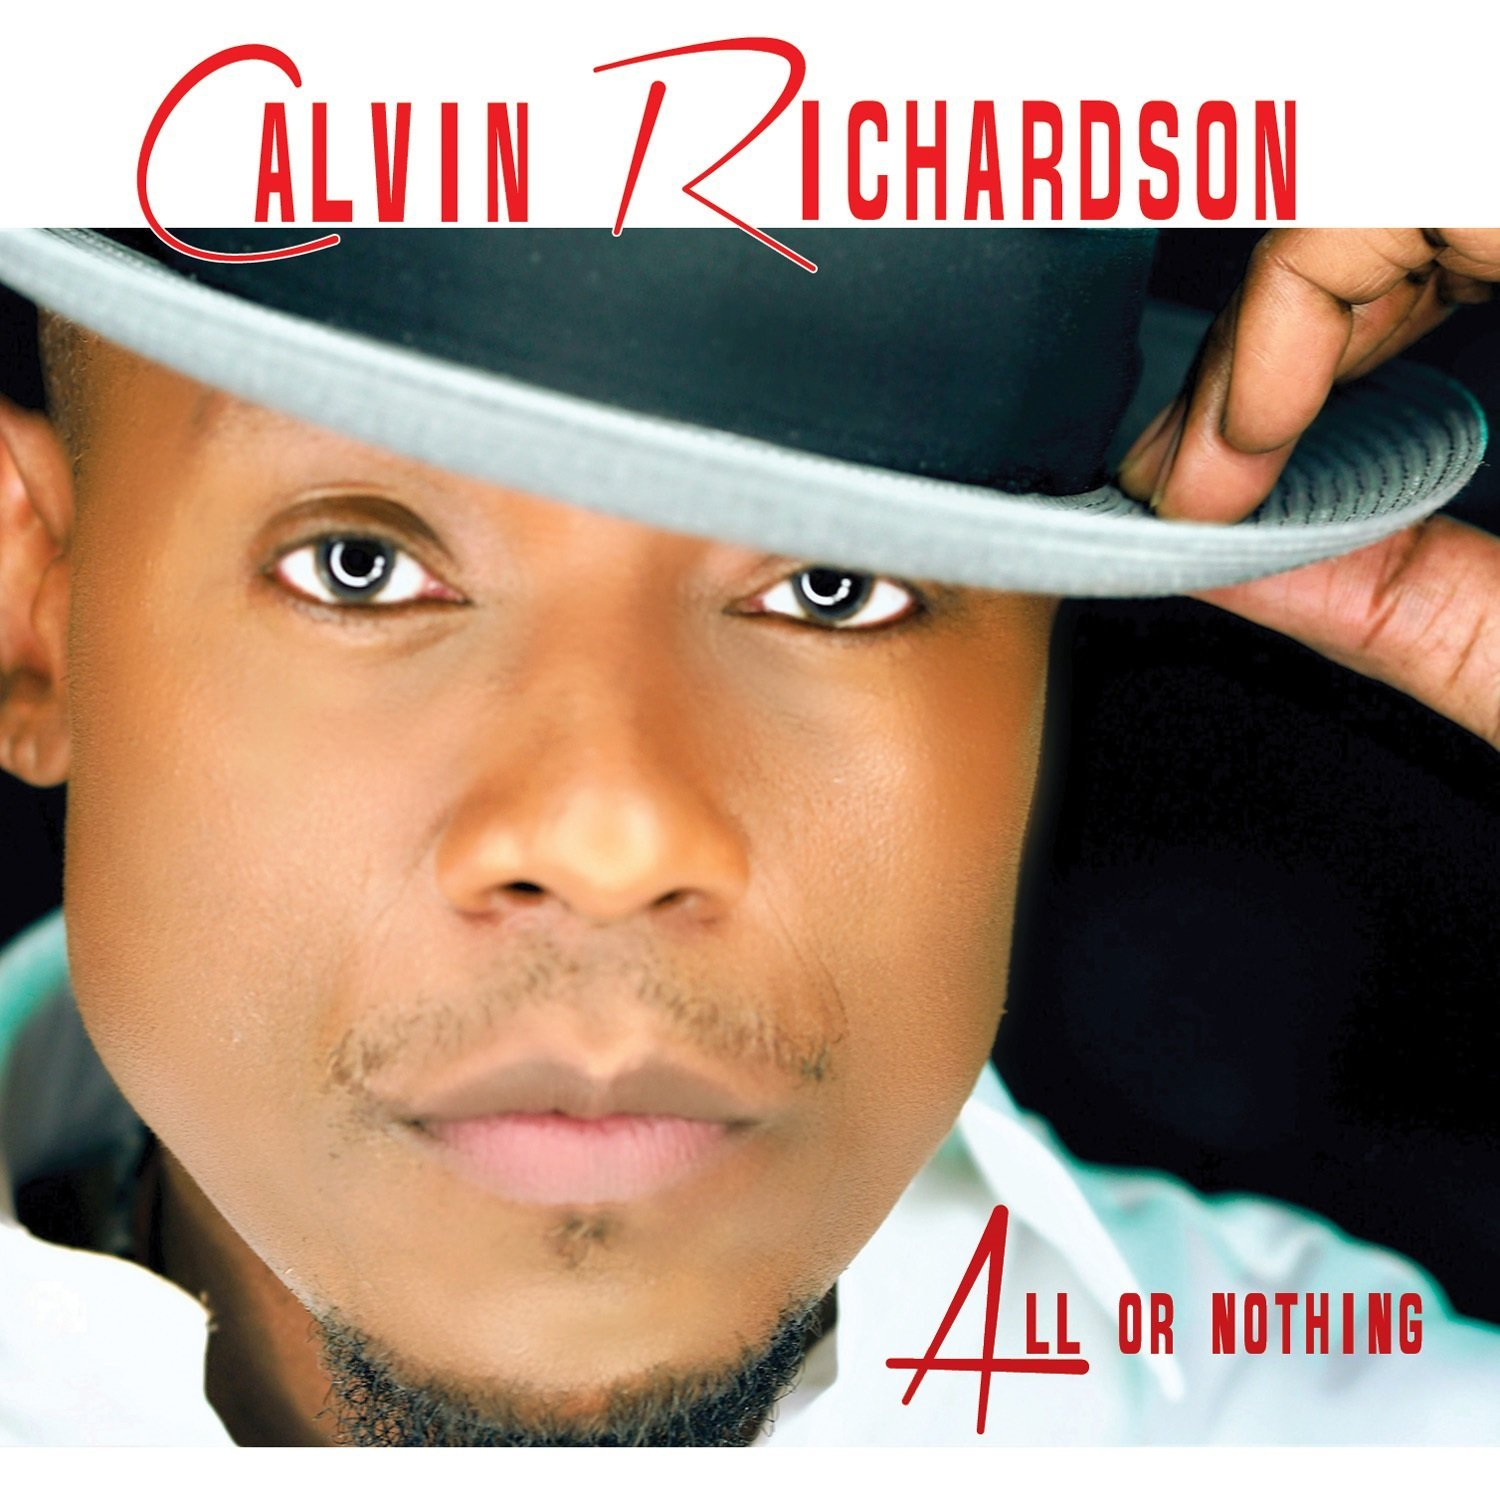 Calvin Richardson - All Or Nothing (CD)